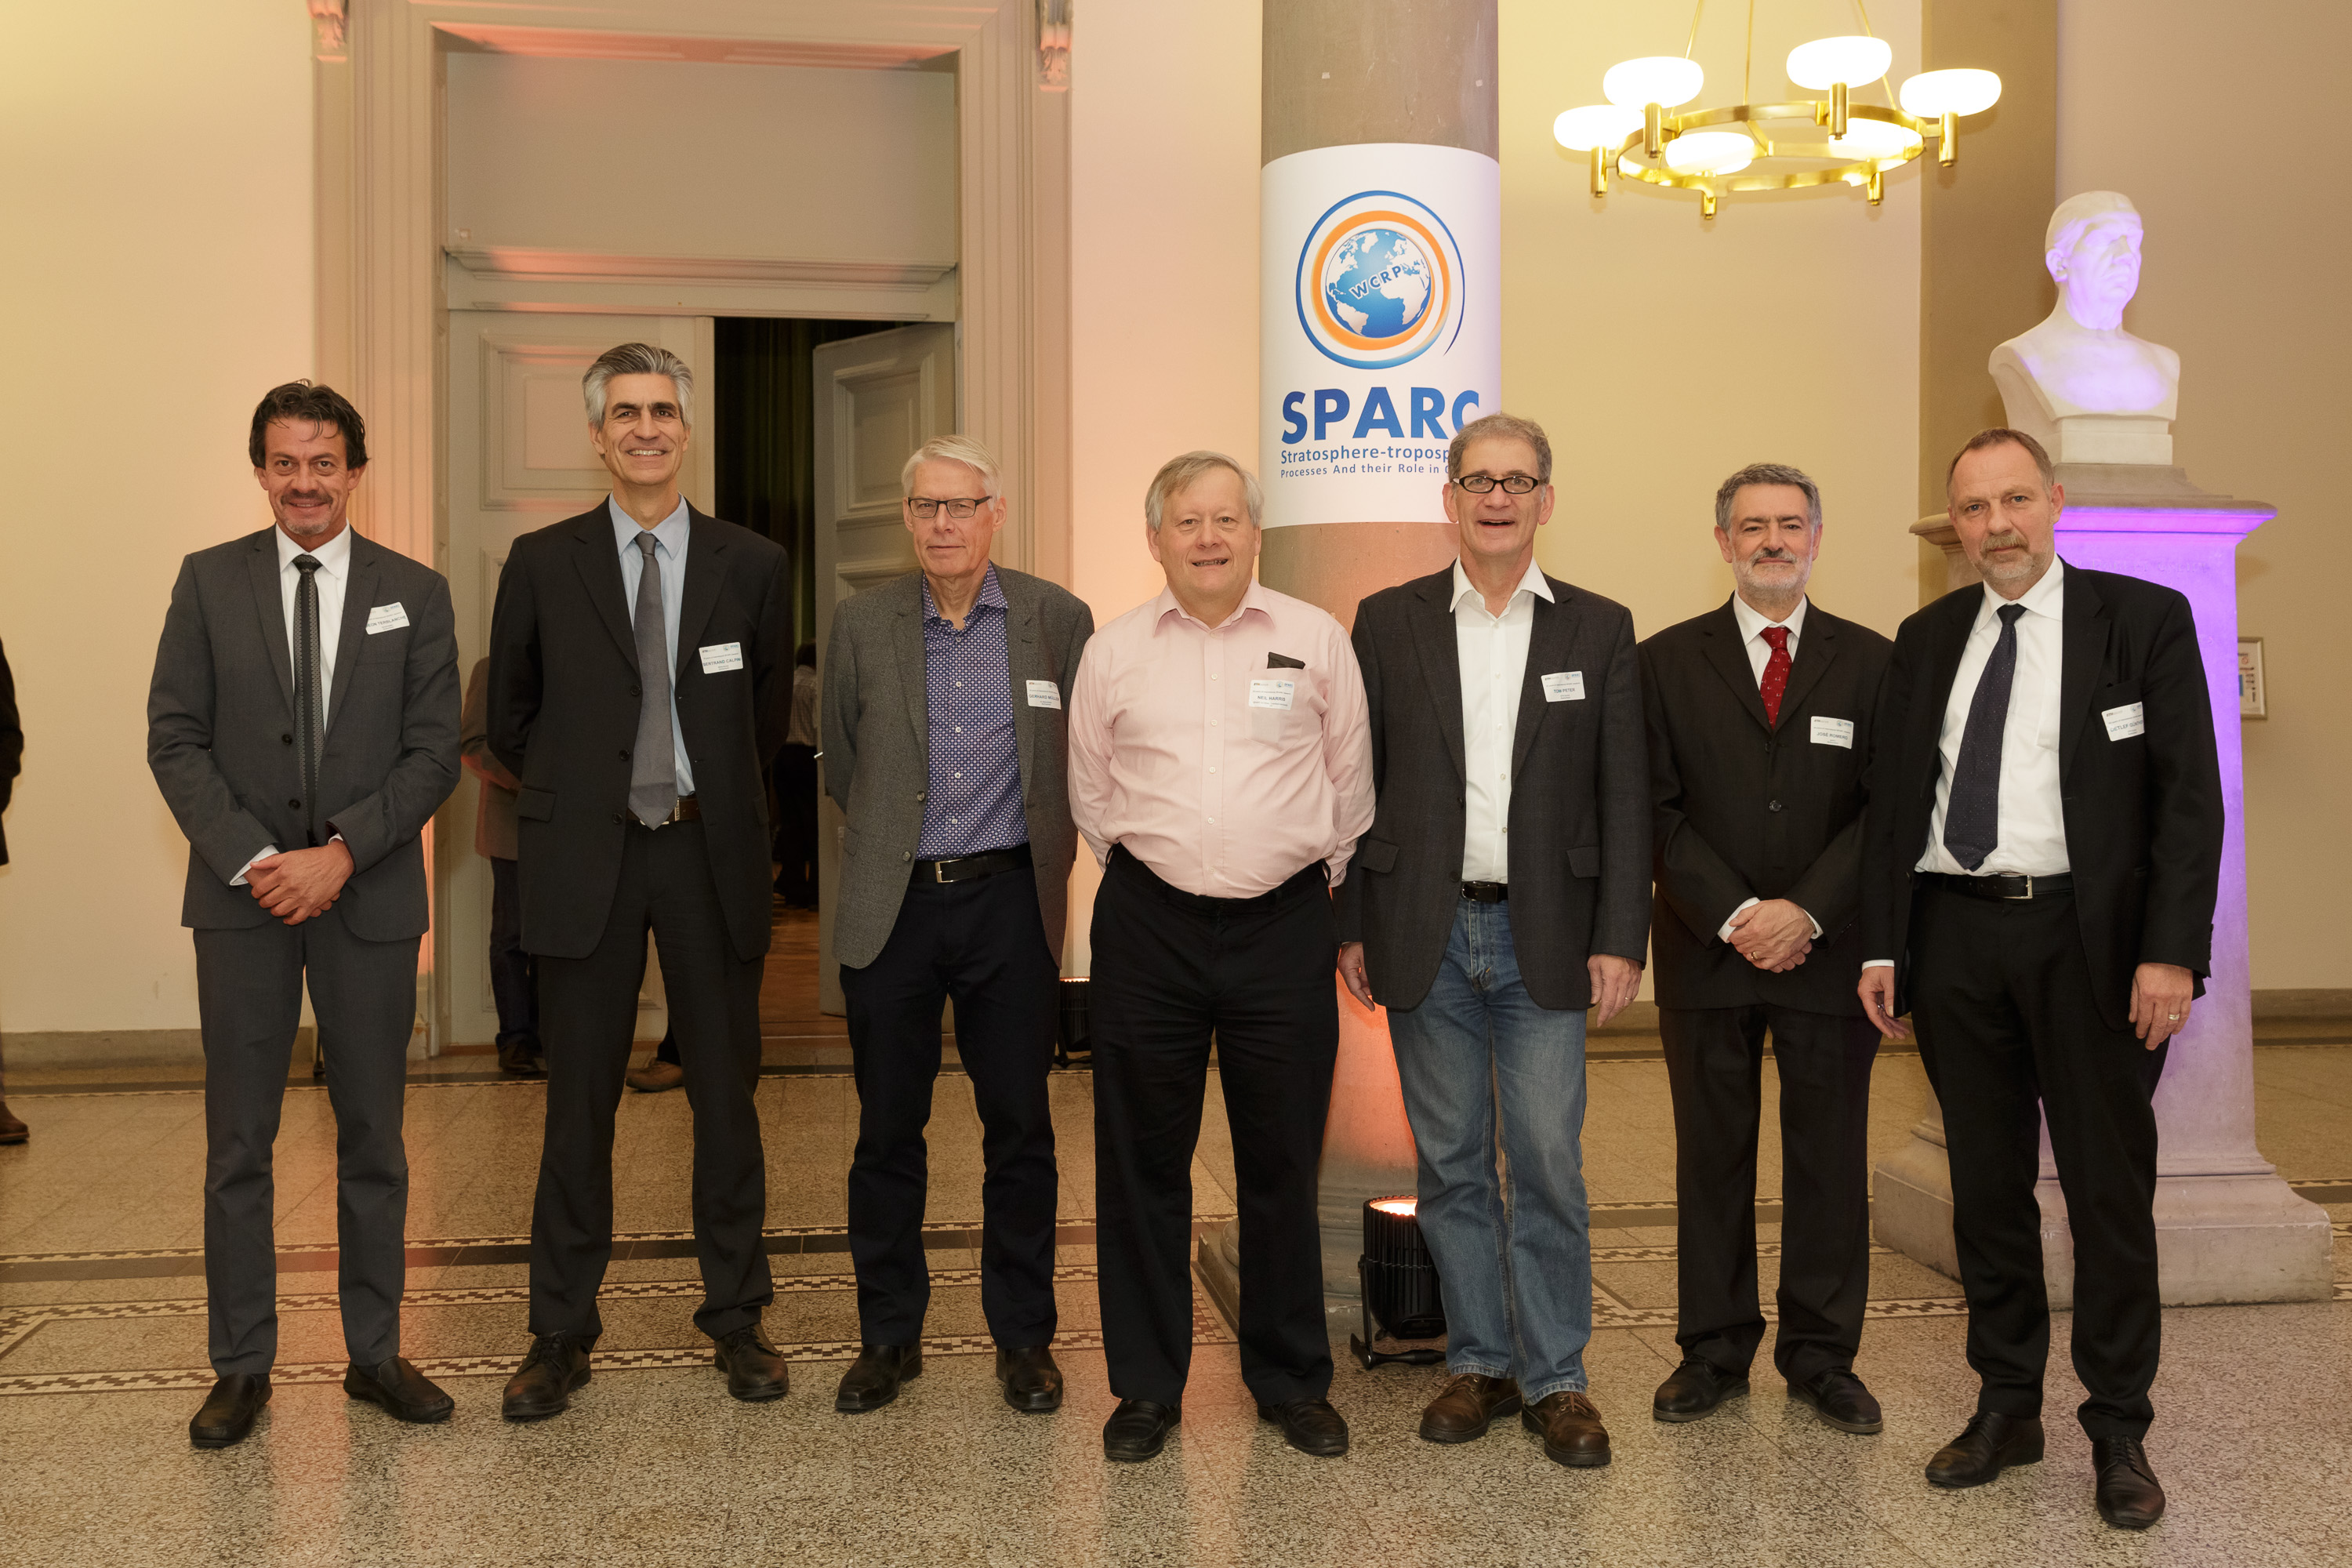 Sponsors and supporters of the SPARC Office in Zurich: Dr. Deon Terblanche, WMO; Prof. Dr. Bertrand Calpini, Meteoswiss; Gerhard Müller, formerly Meteoswiss; Prof. Dr. Neil Harris, Cranfield University; Prof. Dr. Thomas Peter, ETH Zurich; Dr. José Romero, FOEN; Prof. Dr. Detlef Günther, ETH Zurich.